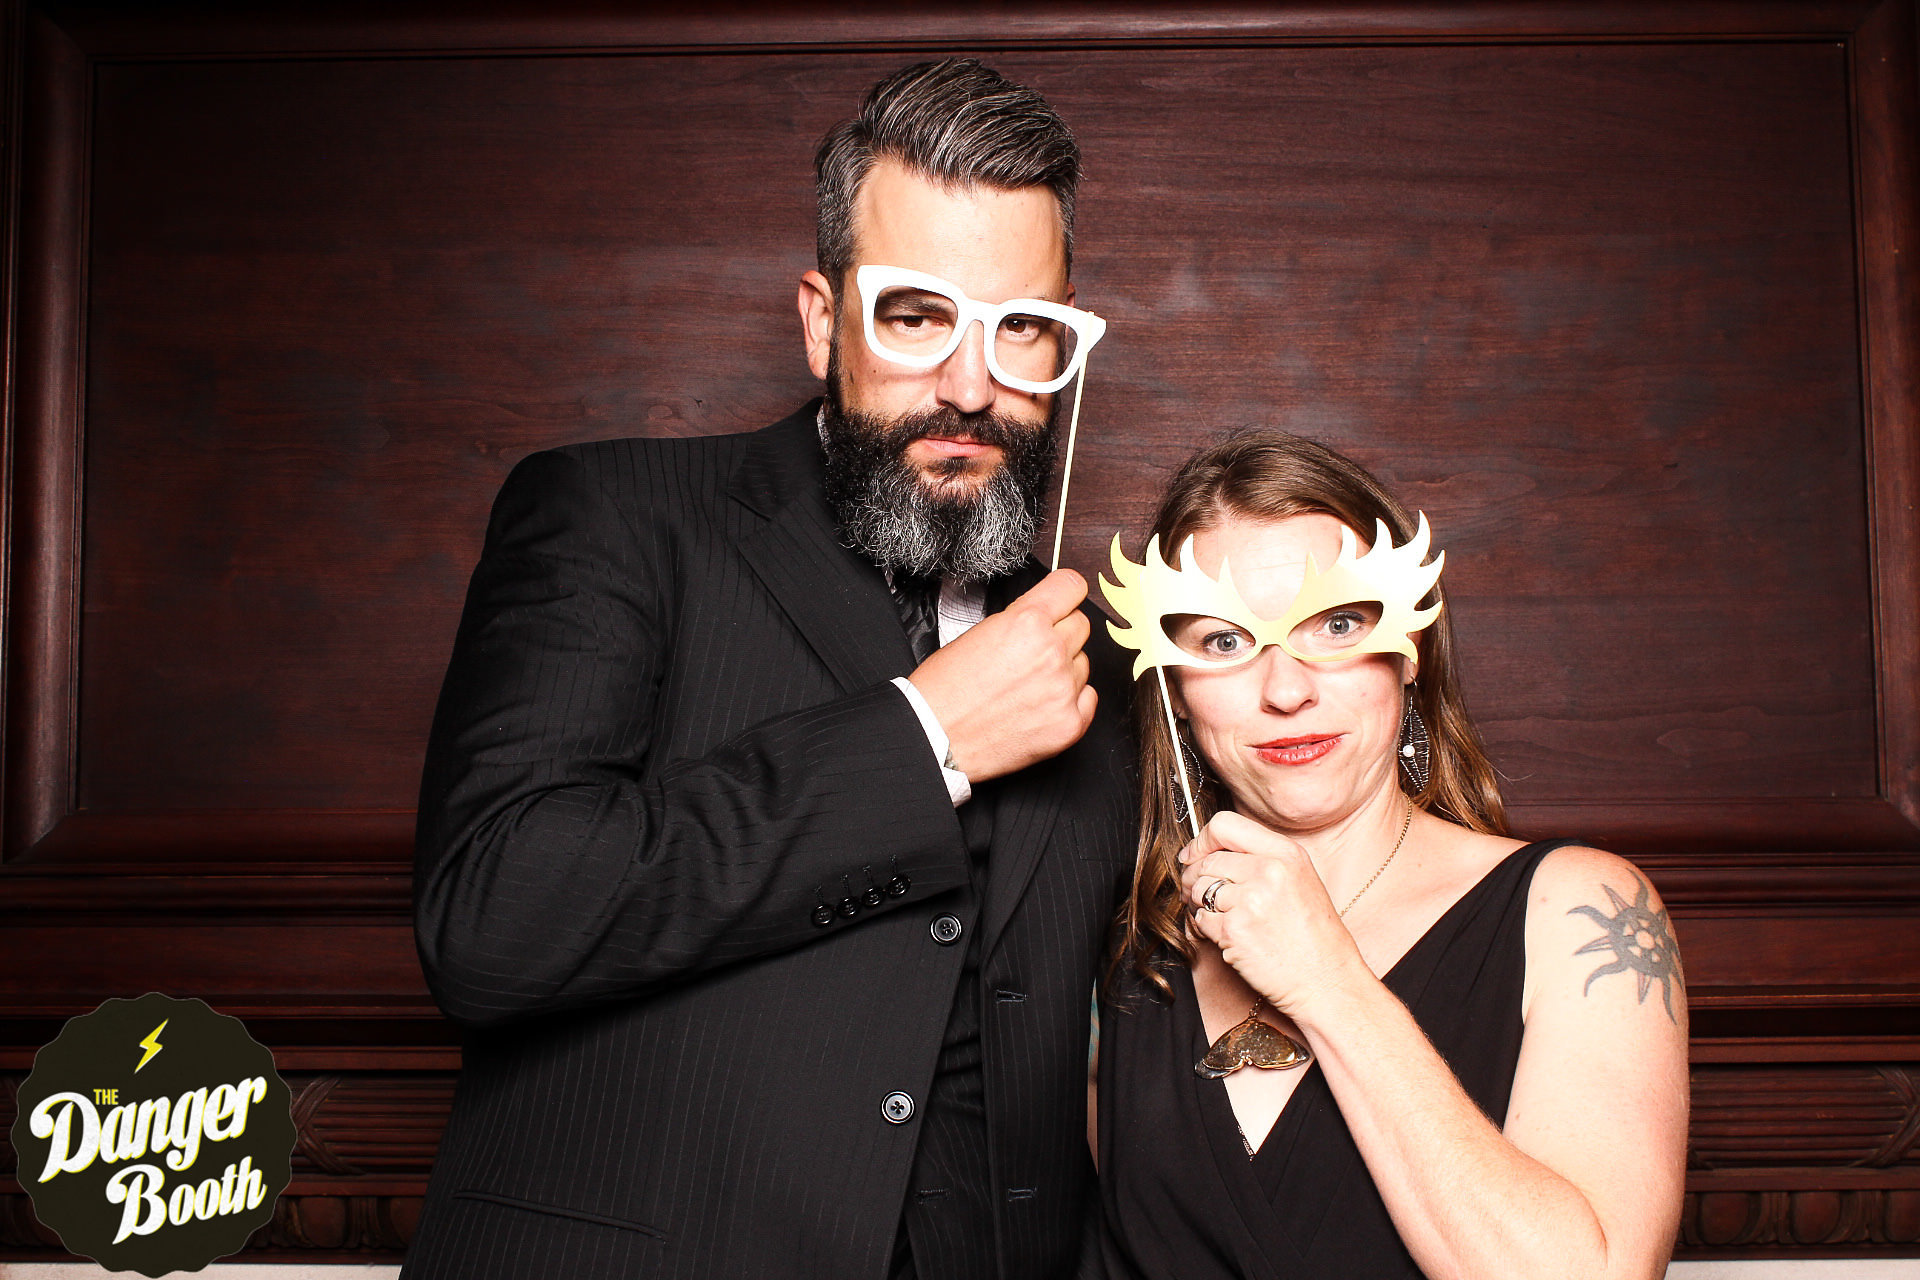 Wedding photo booth | The Danger Booth | Best Photo Booth Boston